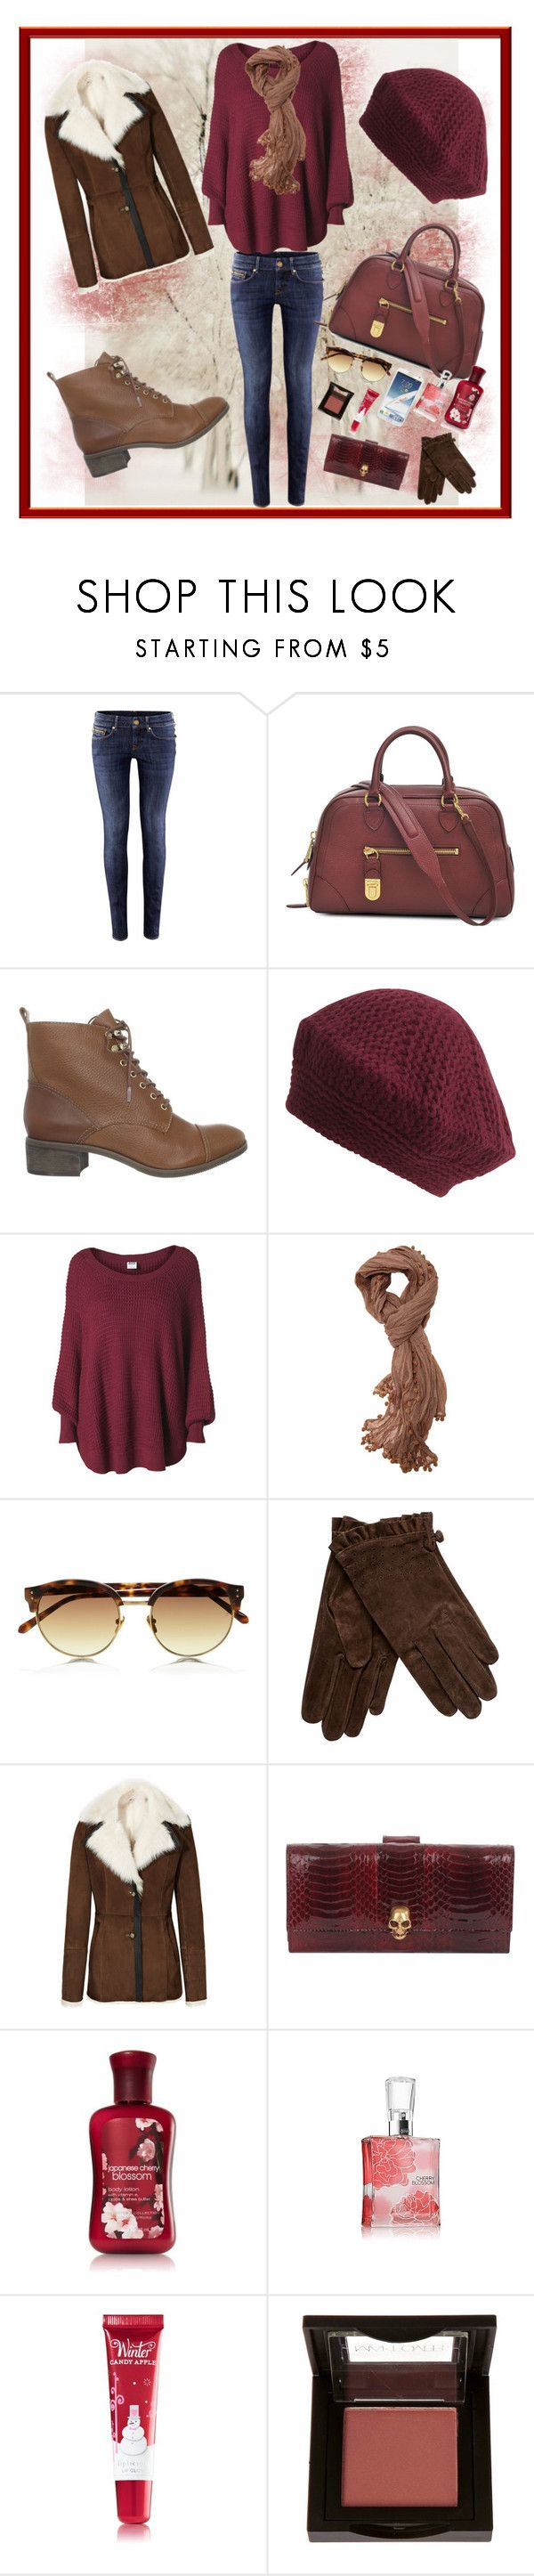 """""""Cherry Blossoms"""" by sophisticated106 ❤ liked on Polyvore featuring H&M, Marc Jacobs, Madison Harding, Jigsaw, Vero Moda, Walnut Melbourne, Linda Farrow, Rocha.John Rocha, Reiss and Alexander McQueen"""